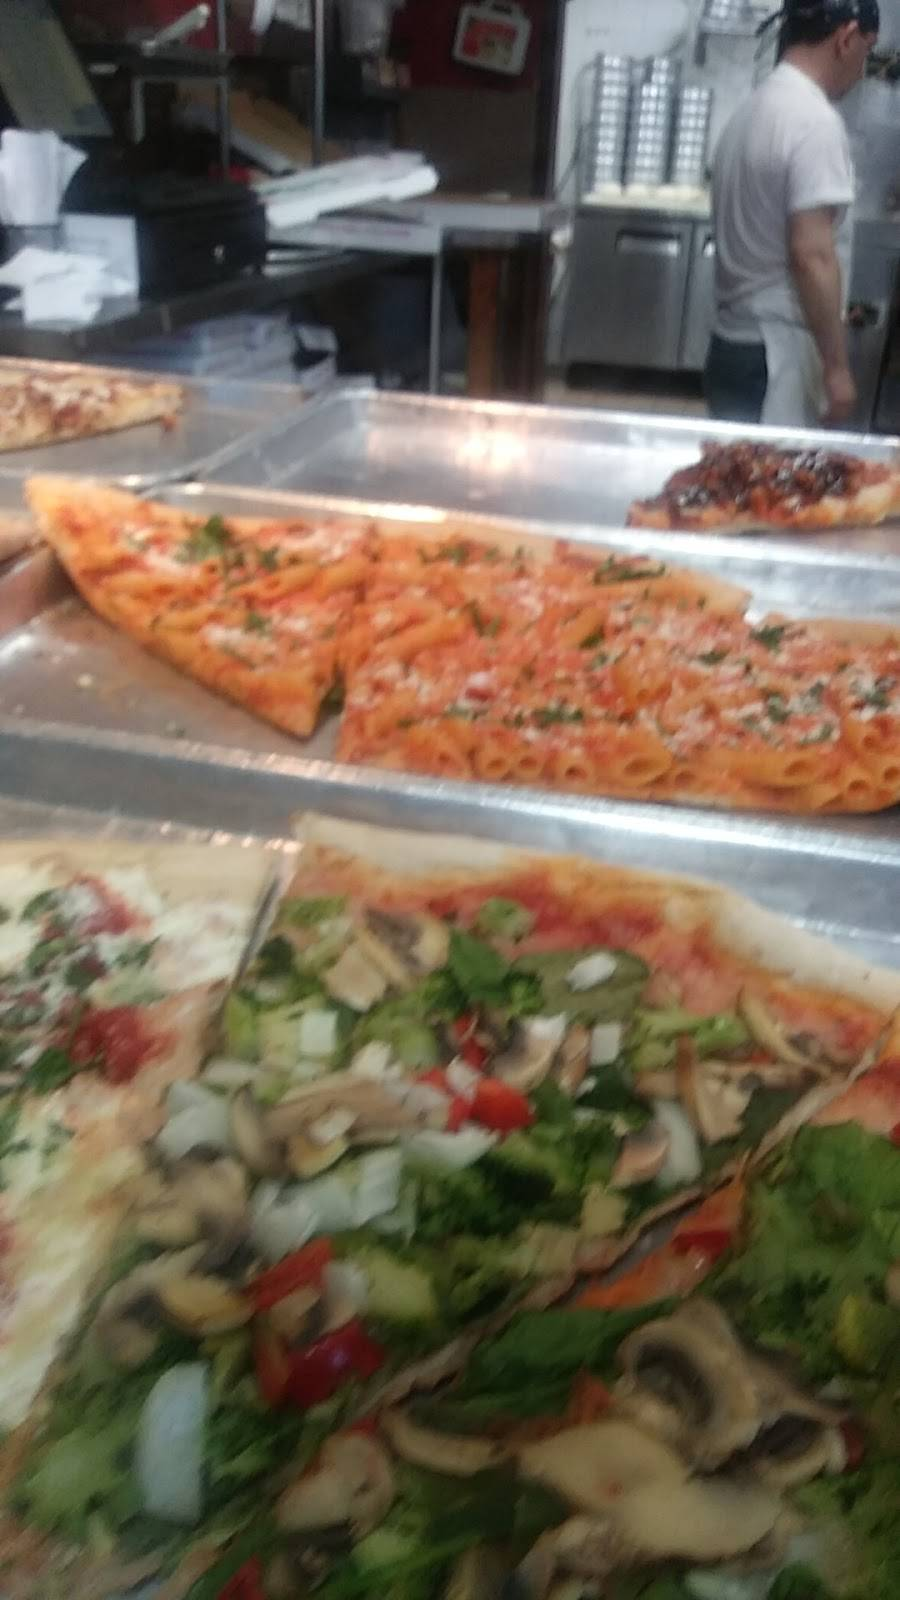 Rocco Pizza | restaurant | 765 Dekalb Ave, Brooklyn, NY 11216, USA | 7182189200 OR +1 718-218-9200